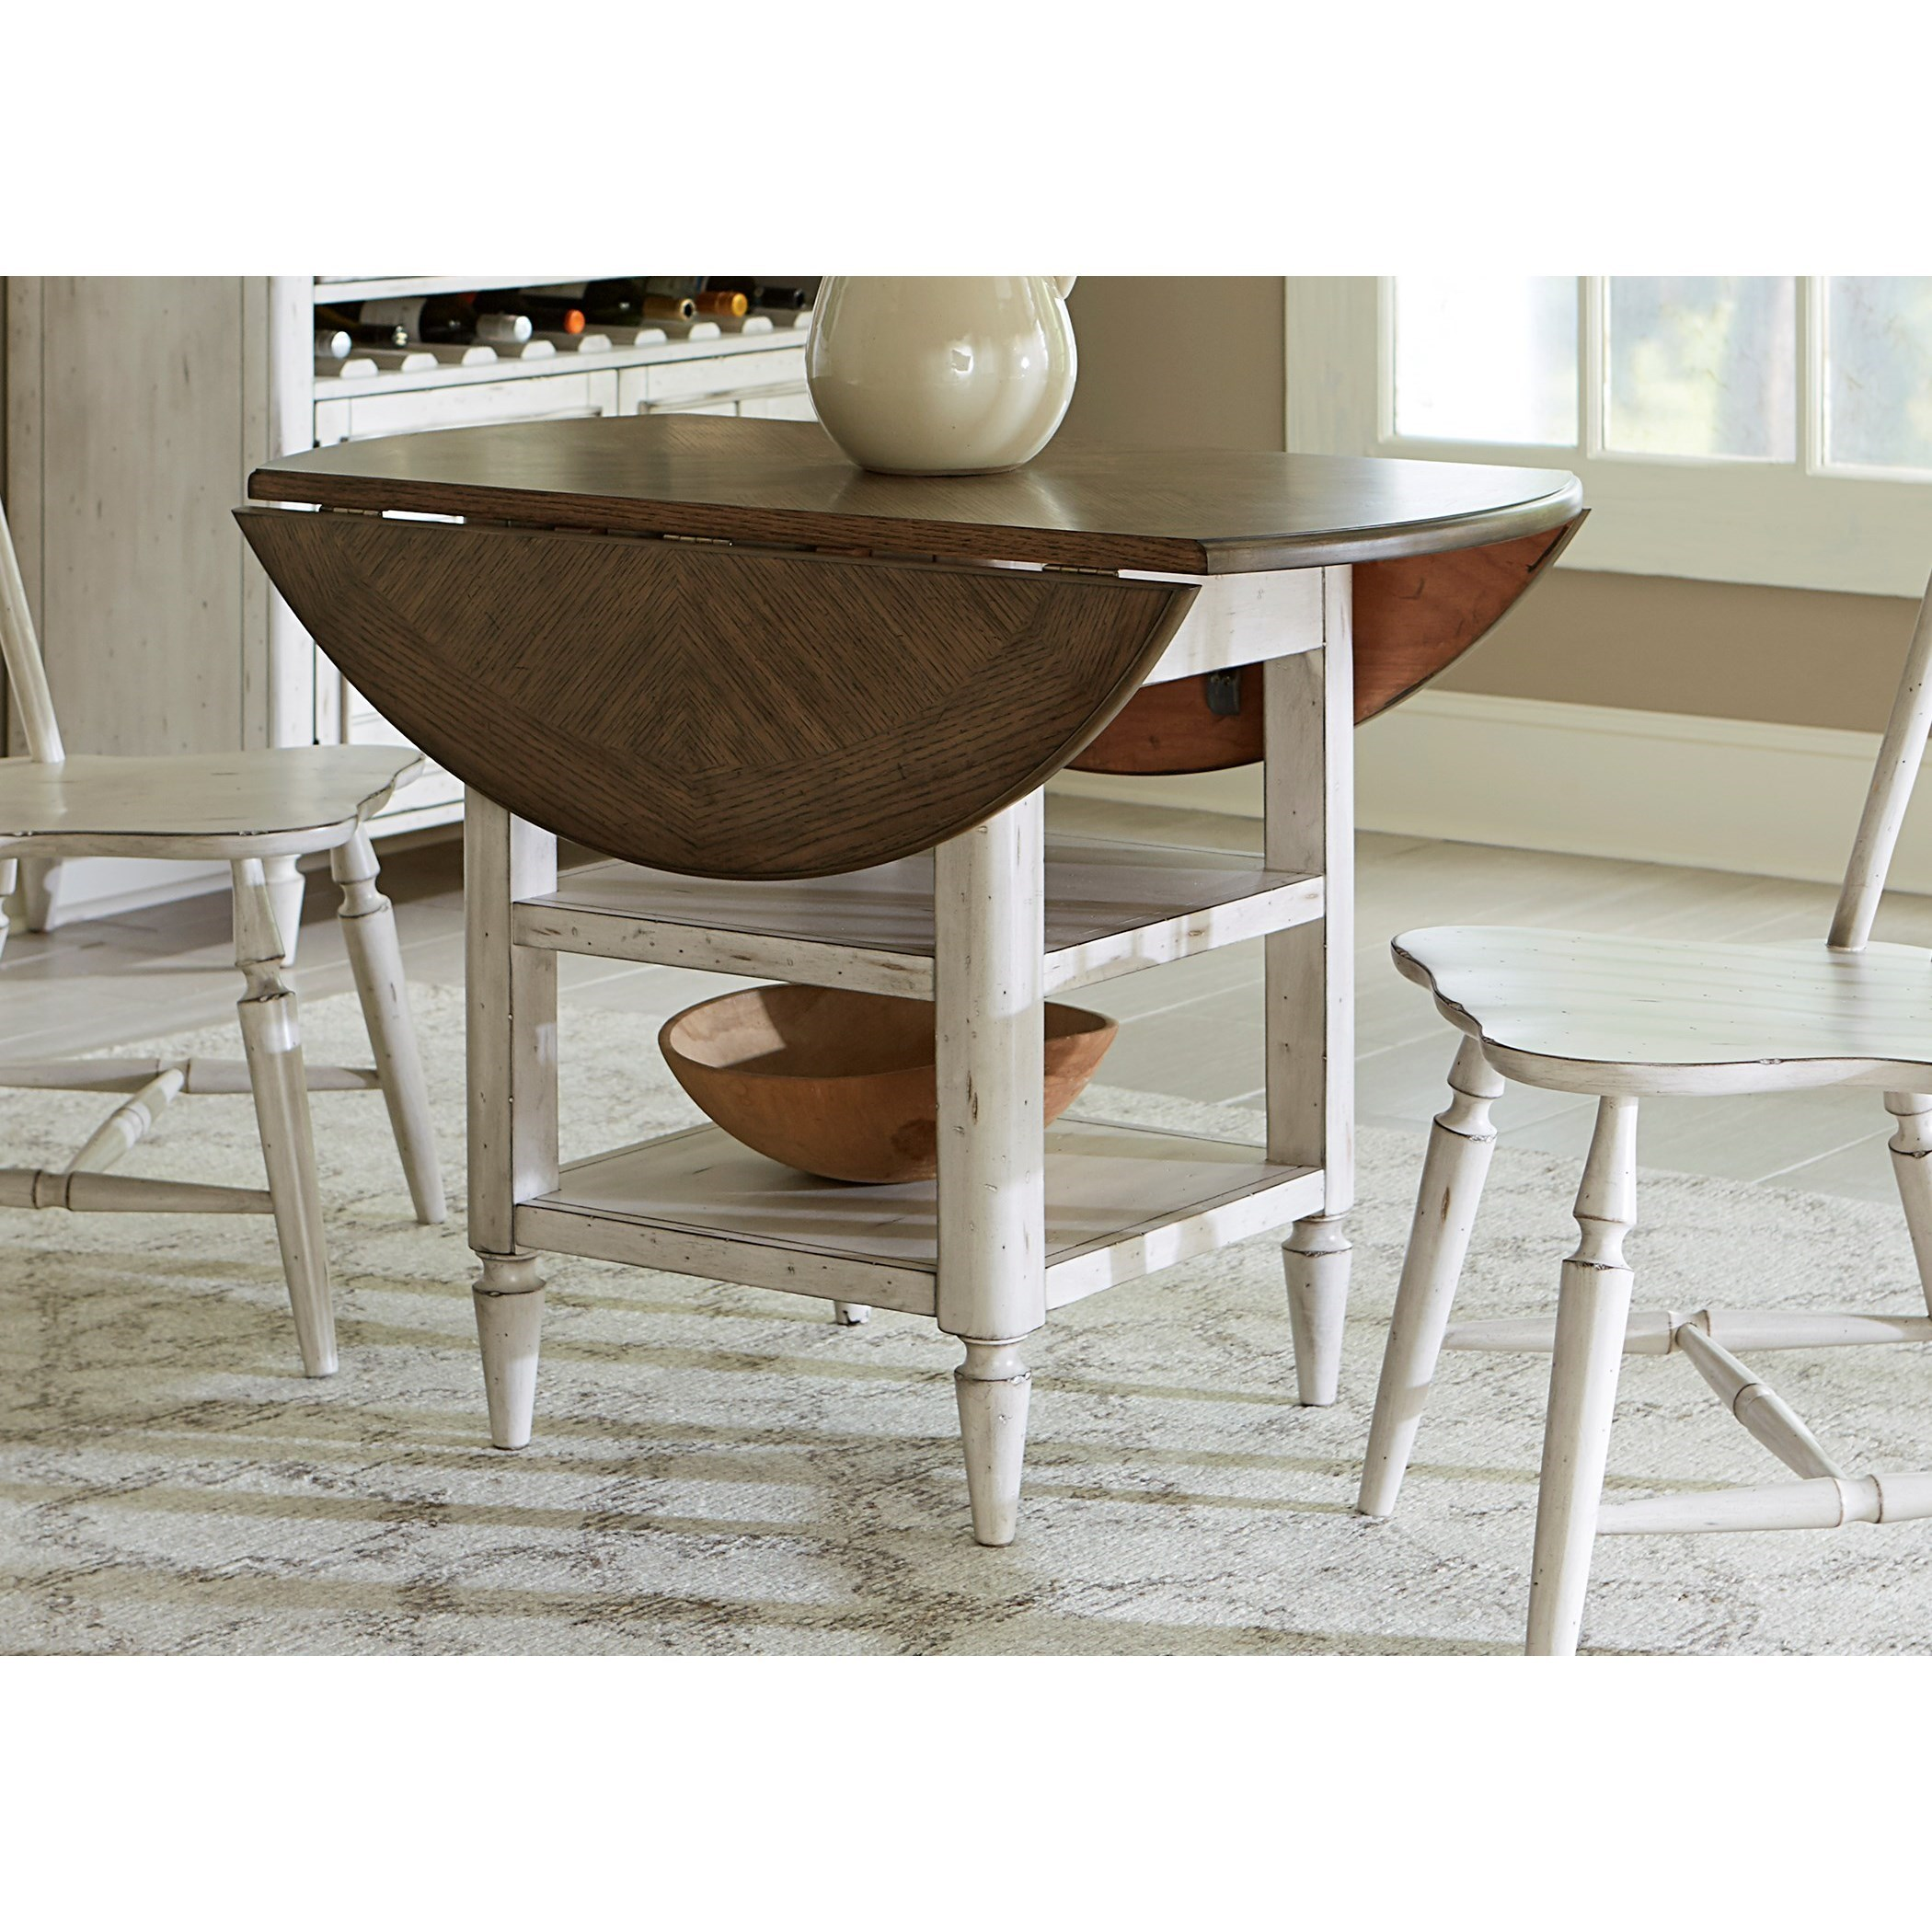 Oak Hill Dining Drop Leaf Table With Storage By Liberty Furniture At Rotmans